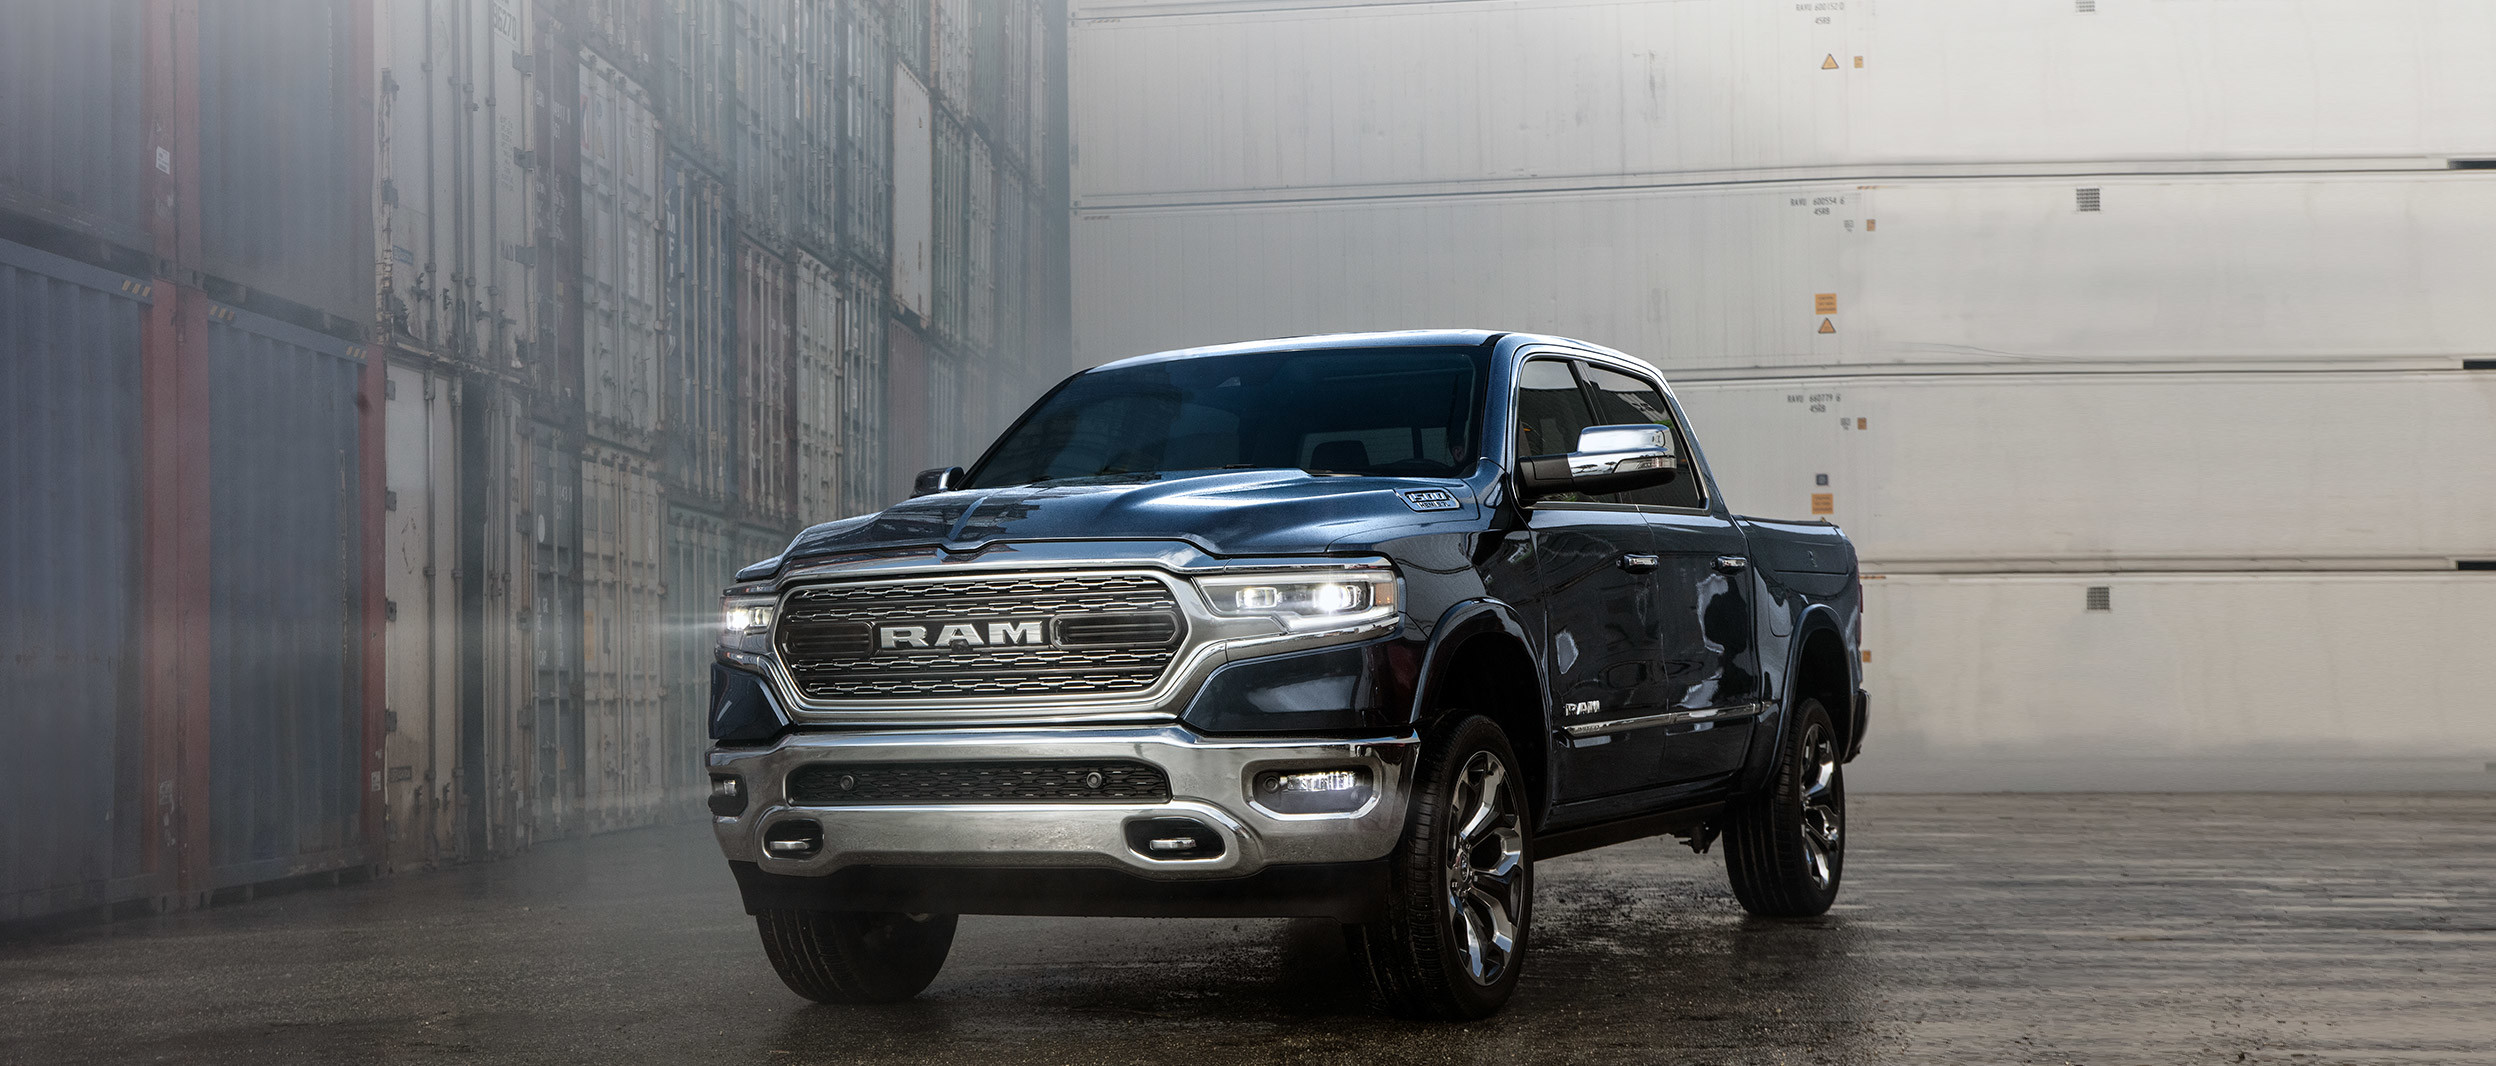 Black 2020 Ram 1500, parked in a large warehouse with cargo containers in the background.